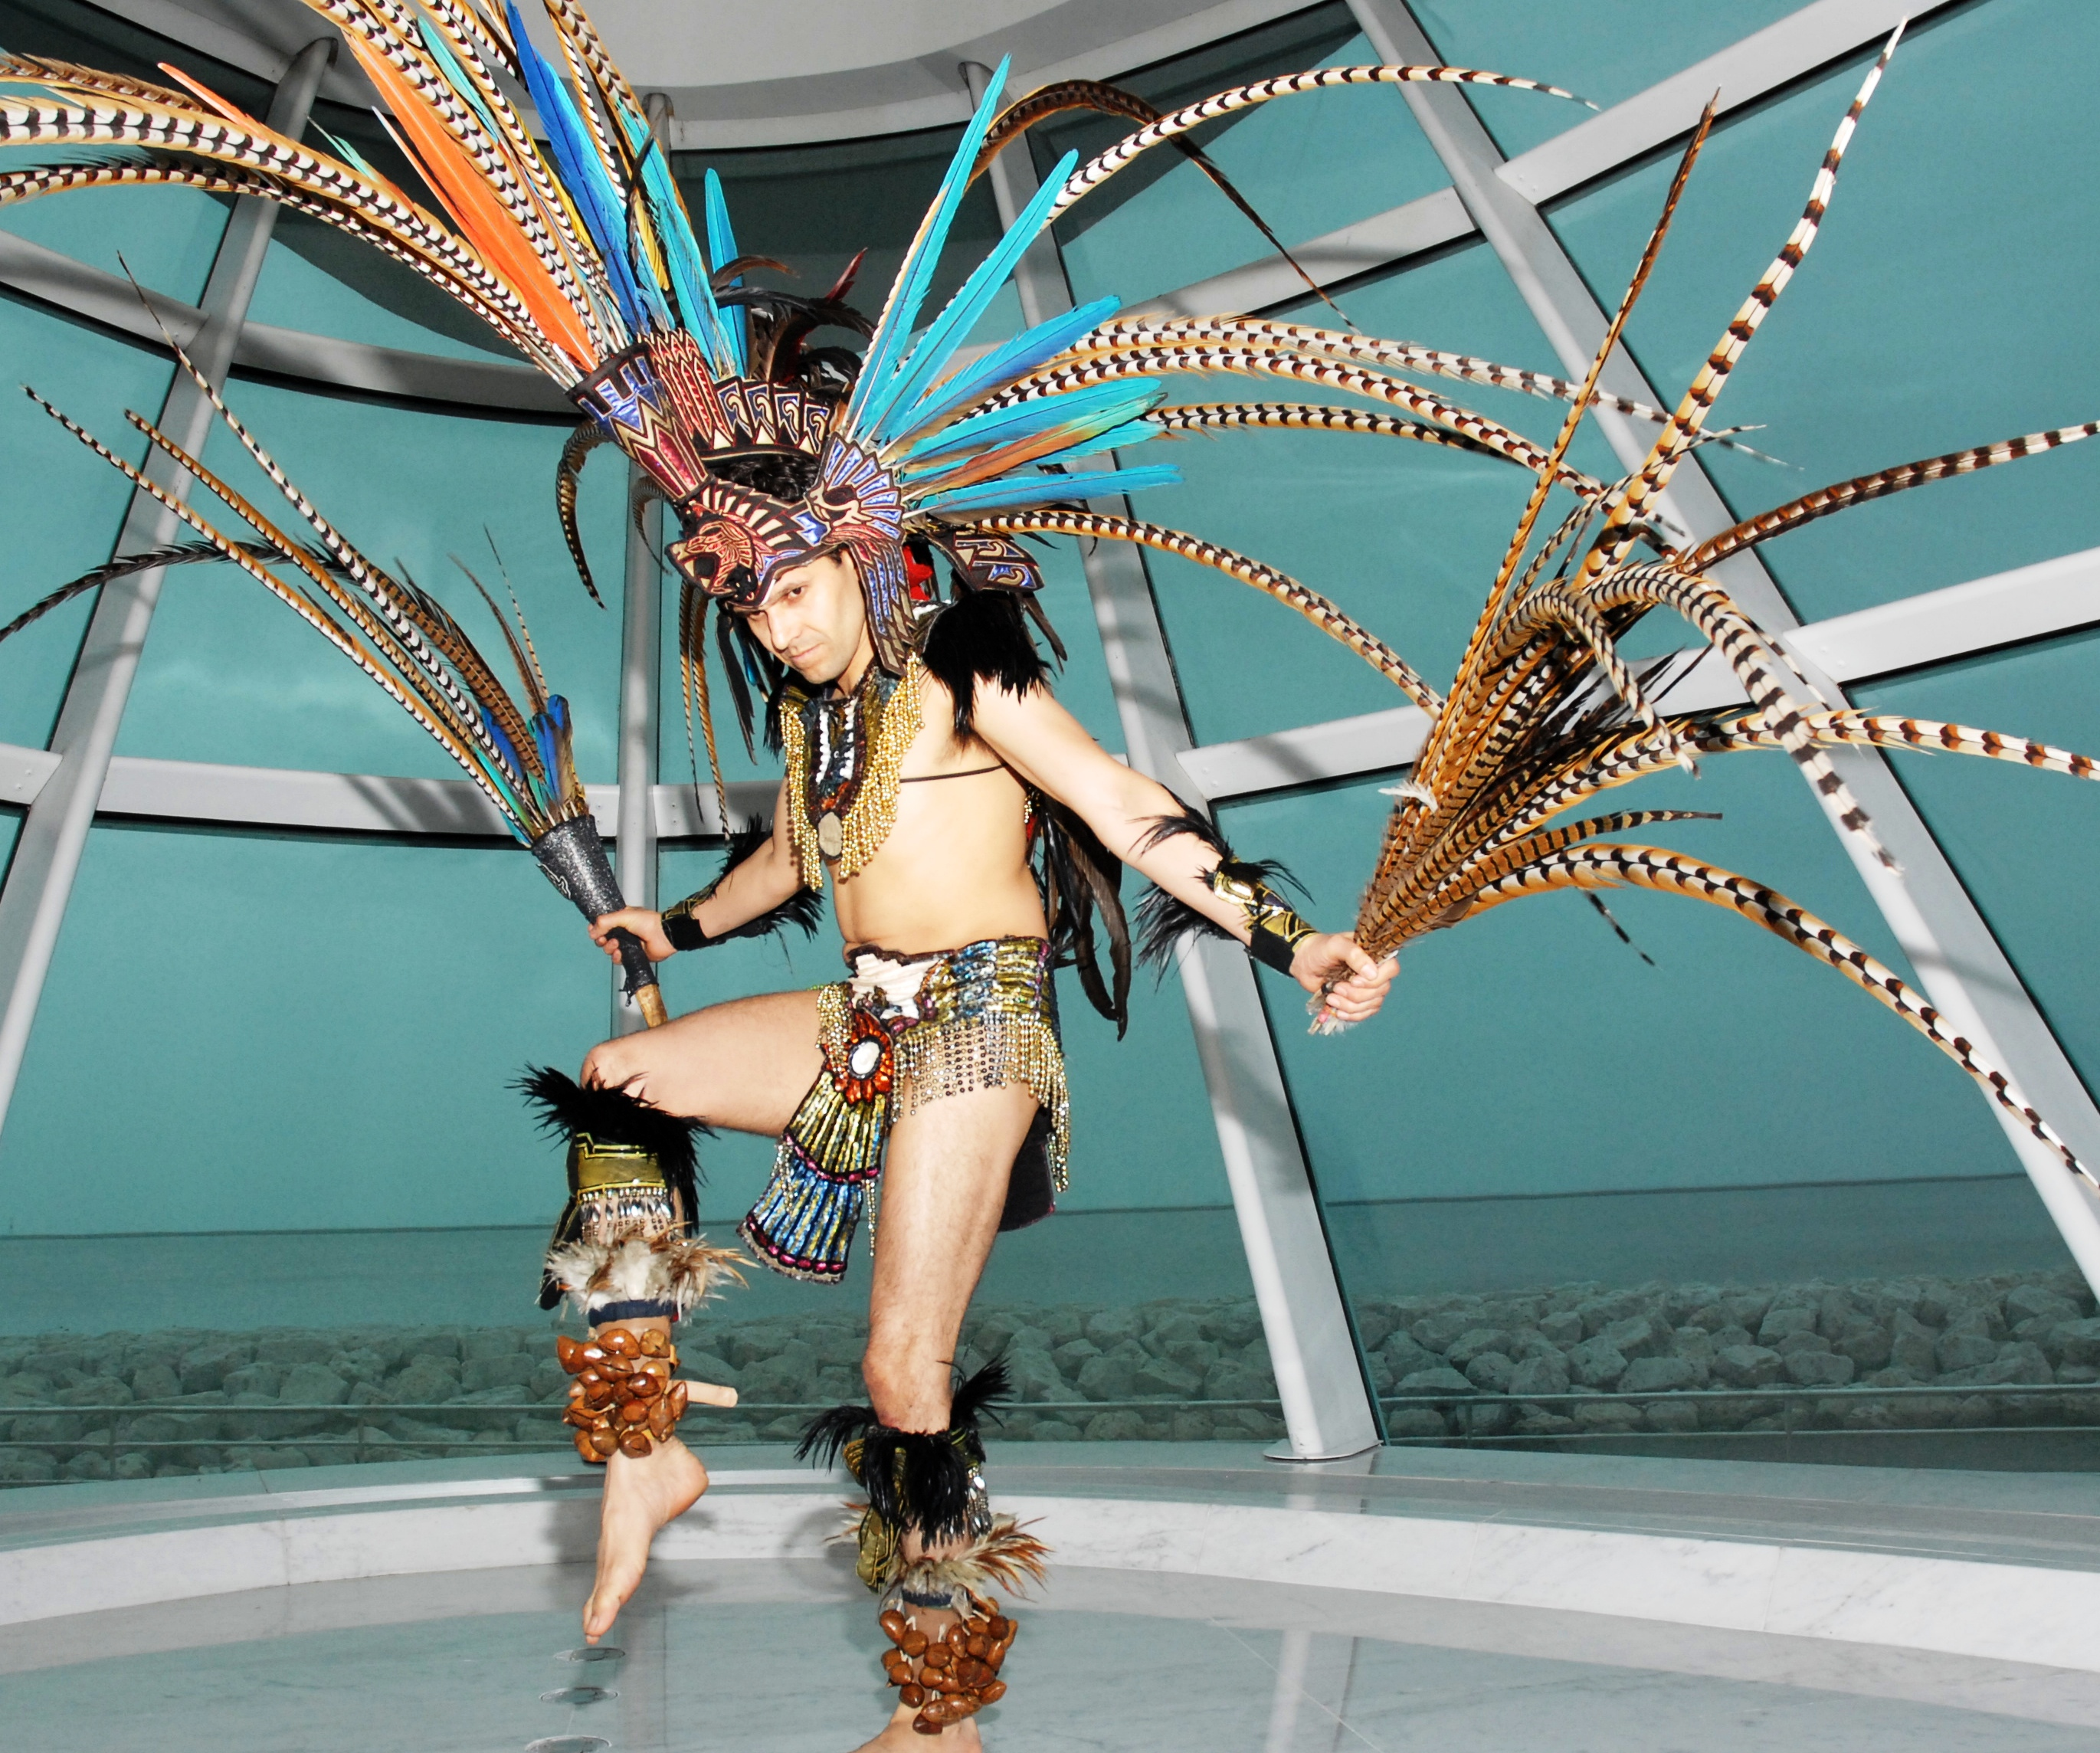 Roberto Franco of Greendale, WI is an Aztec/Mexica dancer, drummer and regalia maker.